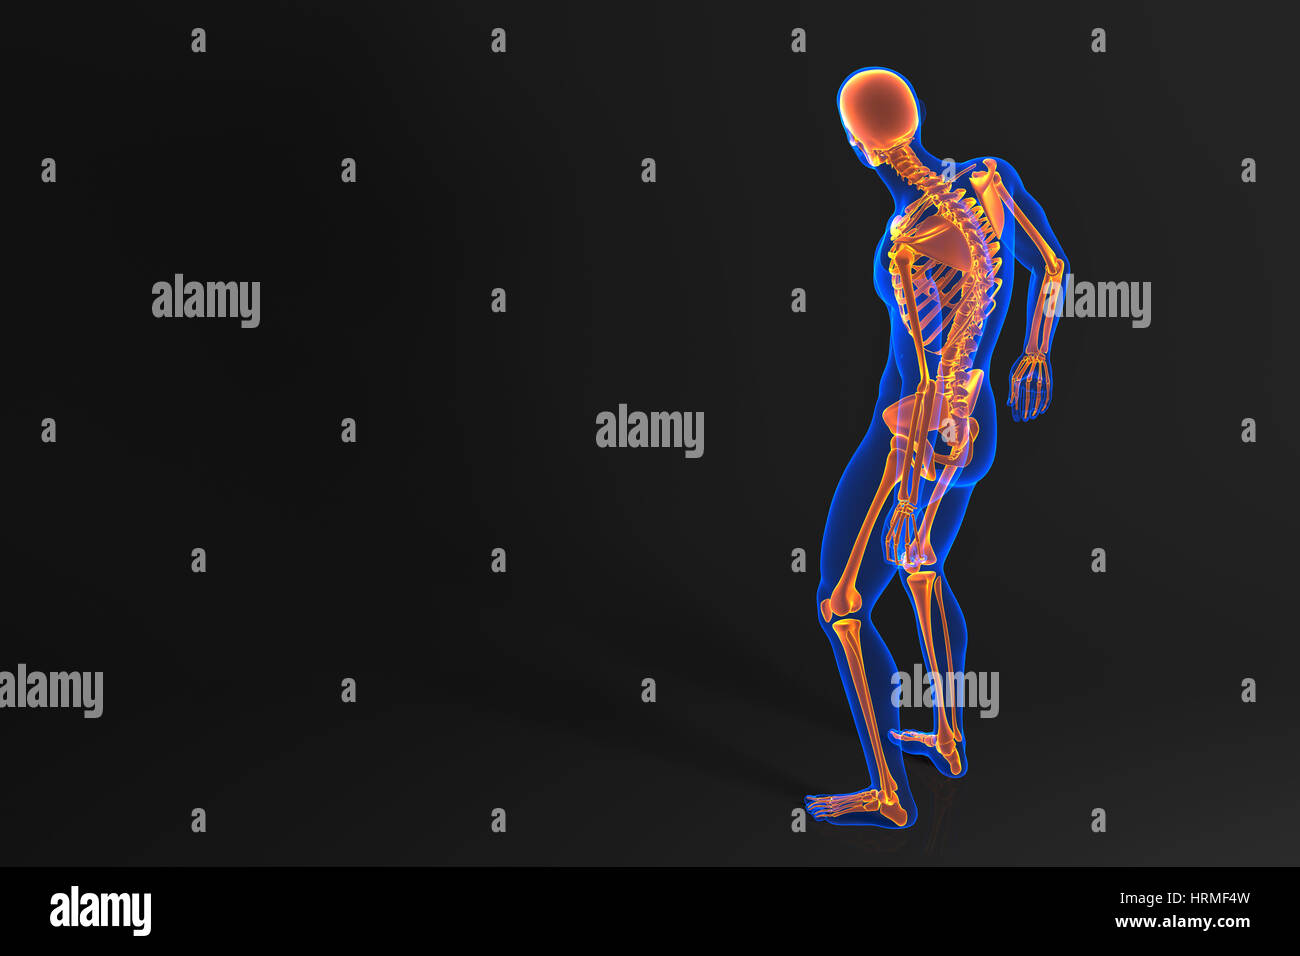 Anatomy human skull rear view stock photos anatomy human skull human skeleton rear view contains clipping path stock image ccuart Choice Image